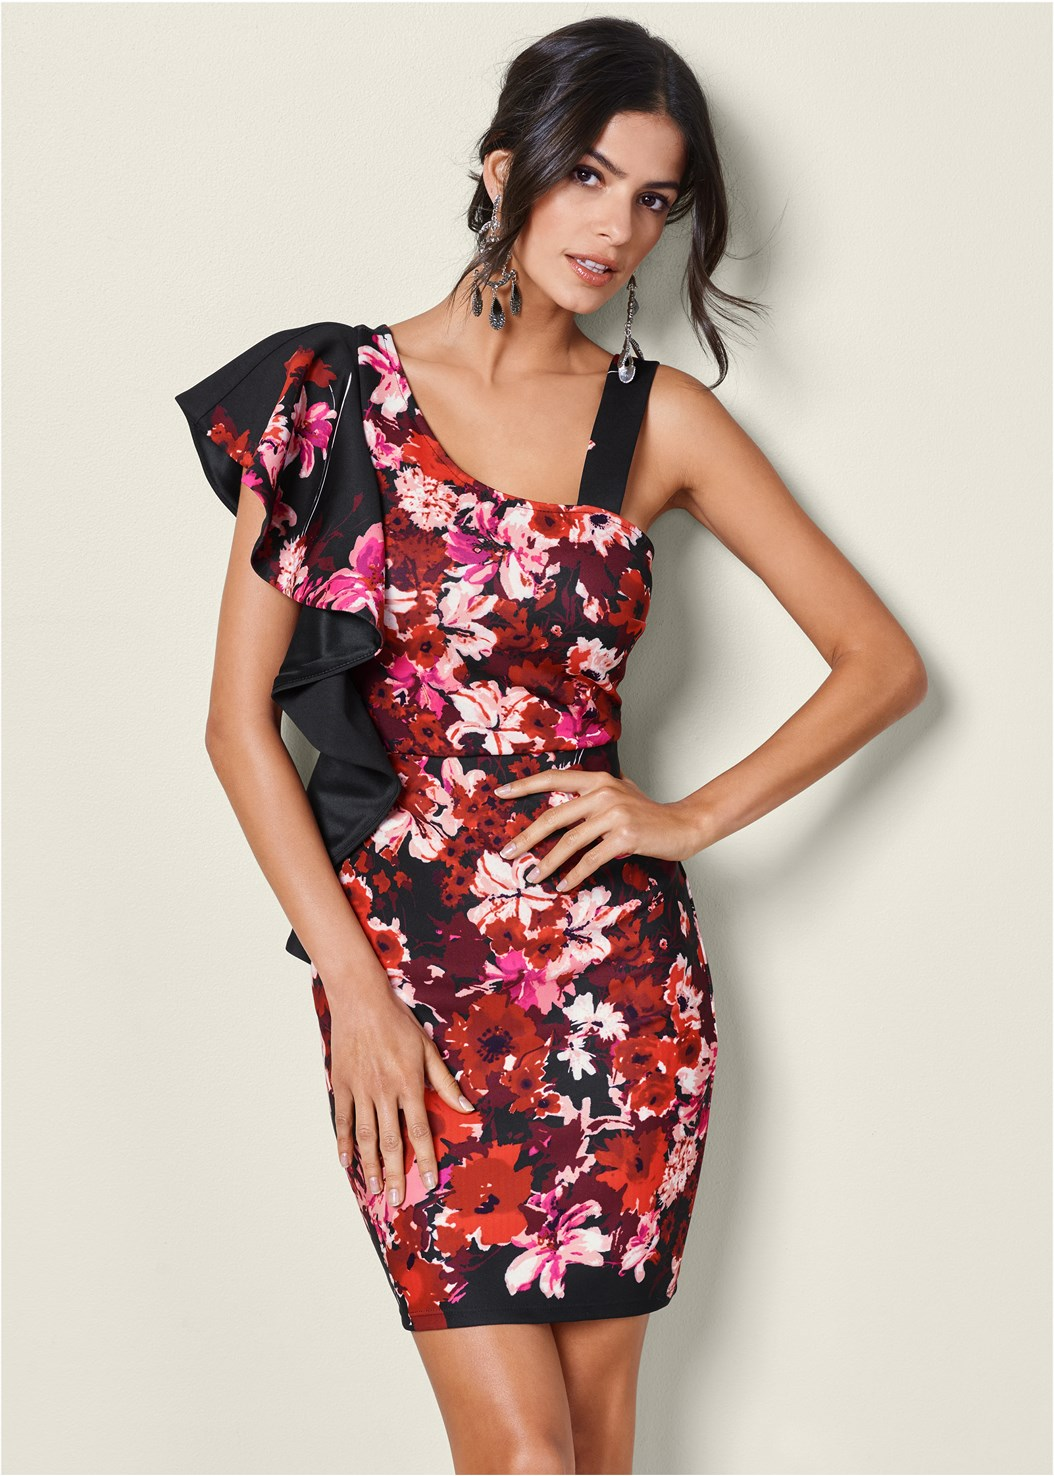 One Shoulder Floral Dress,High Heel Strappy Sandals